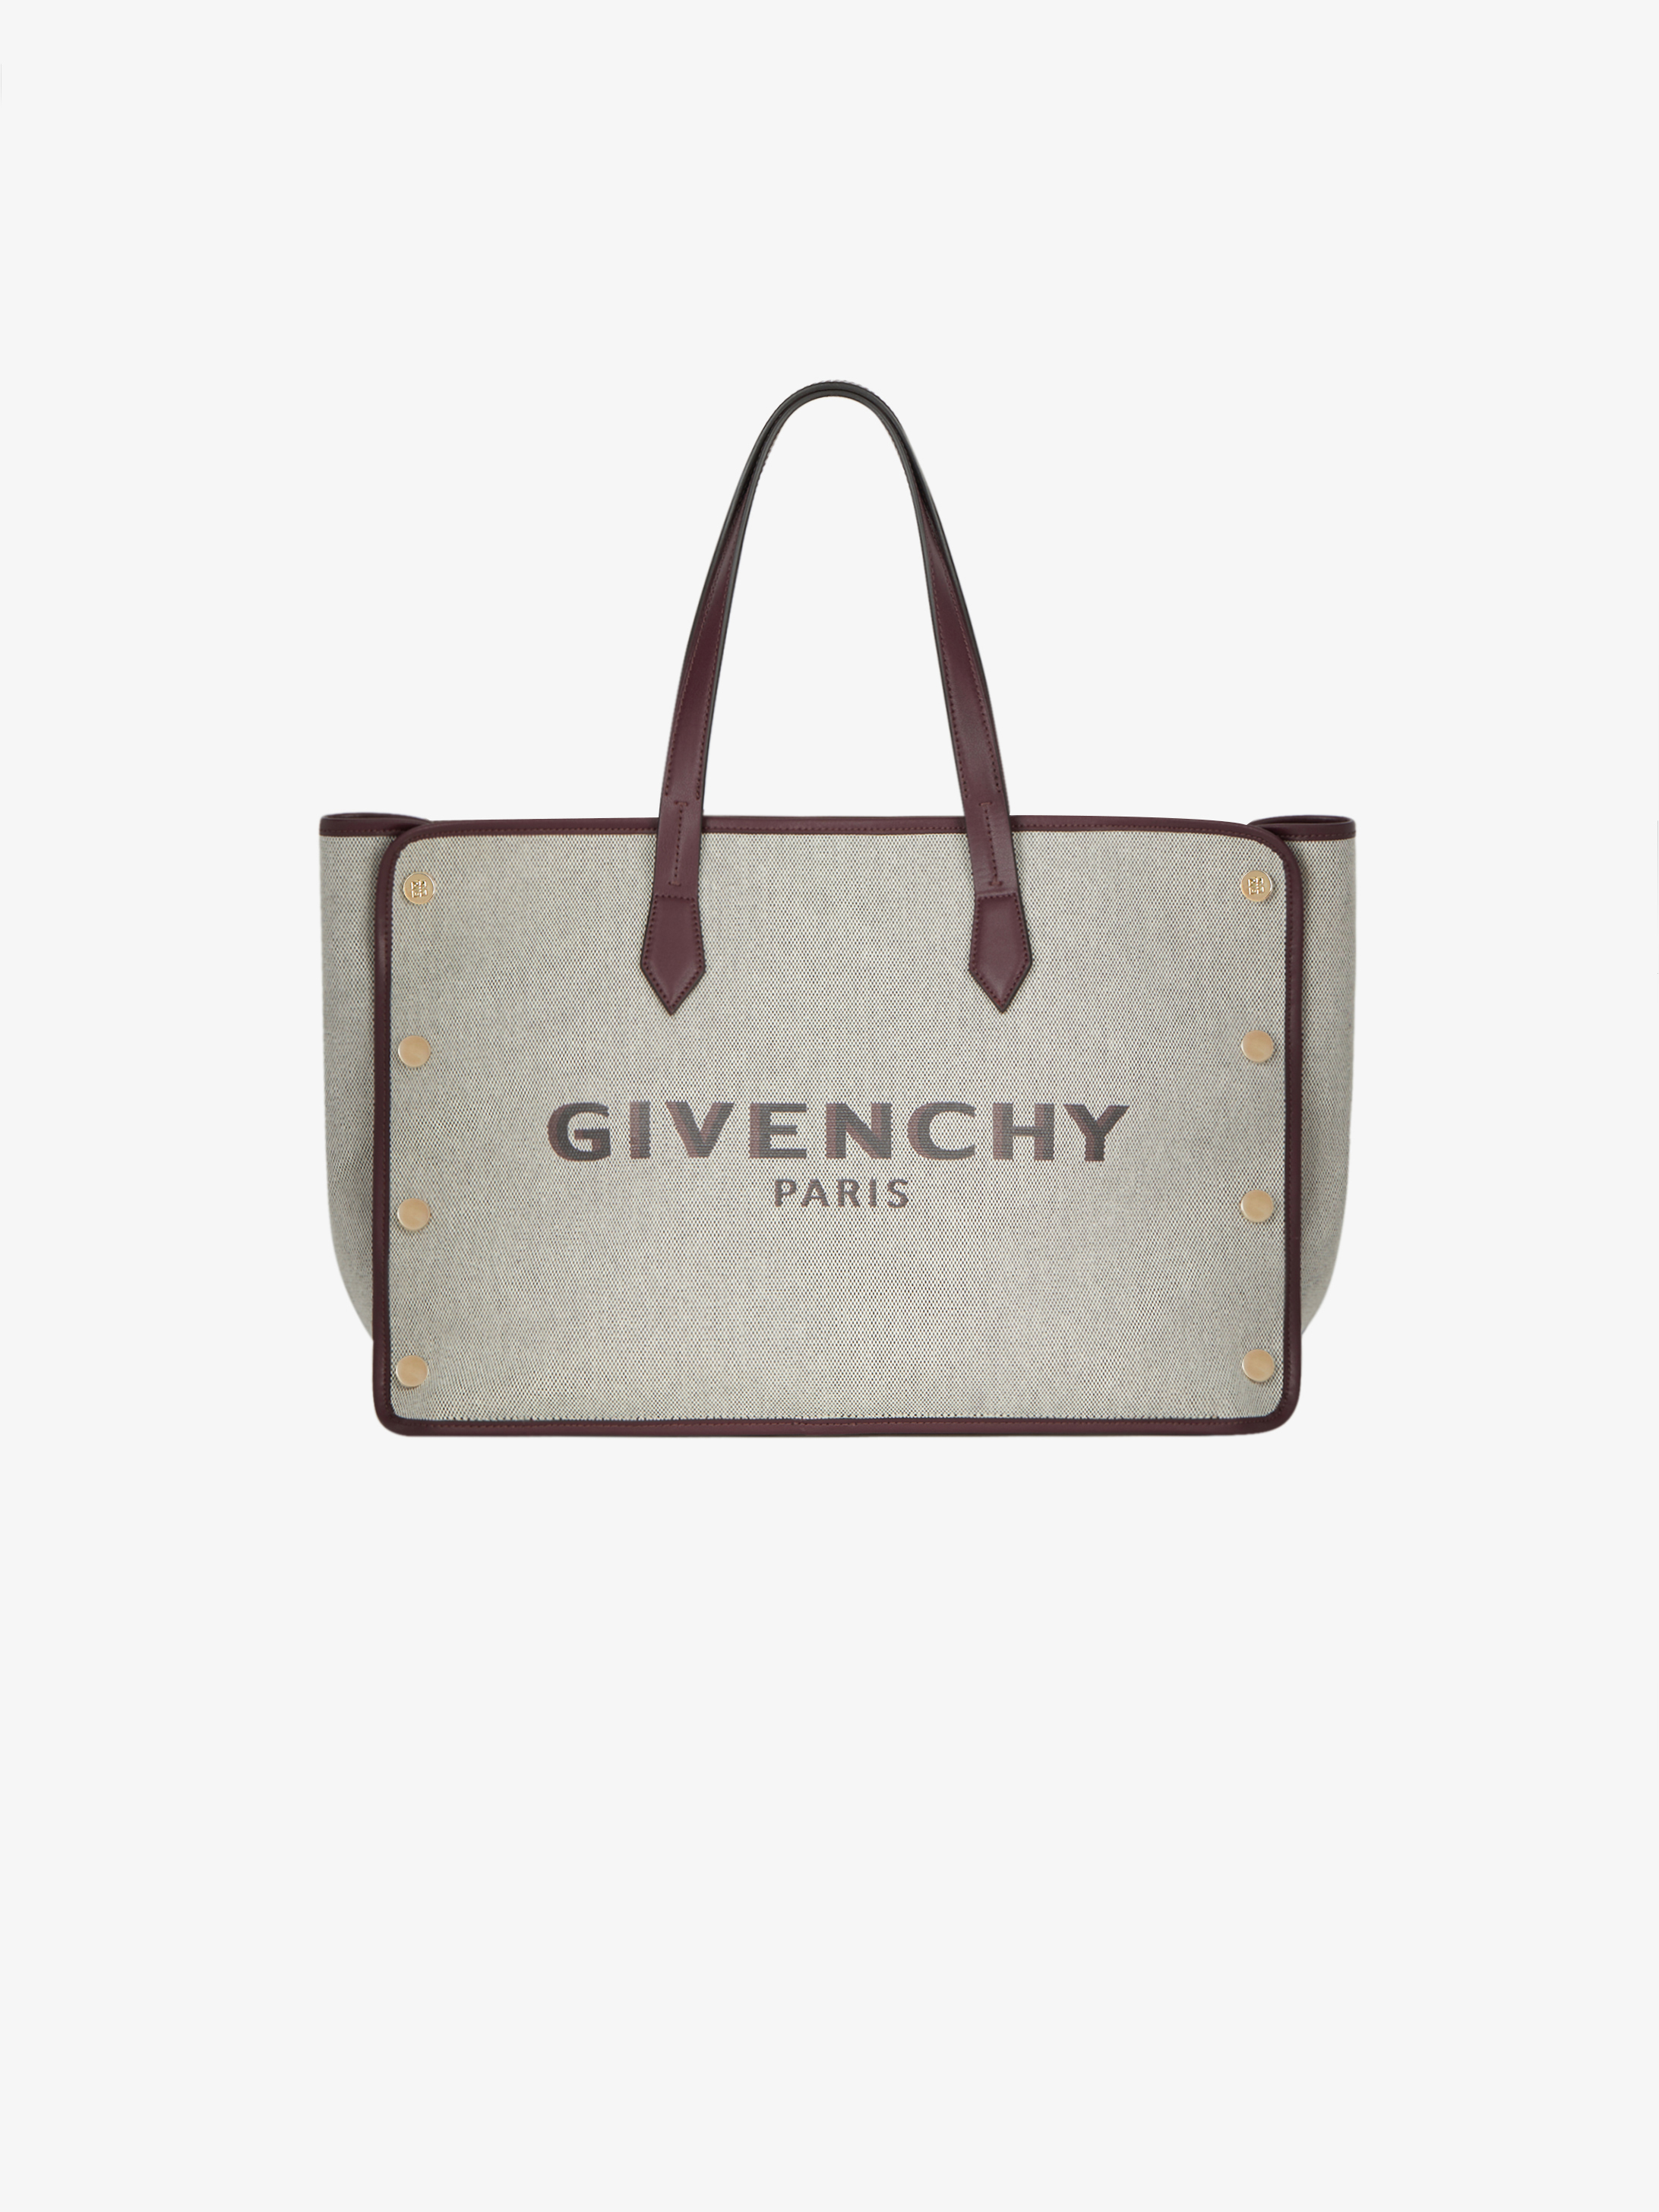 Medium Bond shopper in GIVENCHY canvas